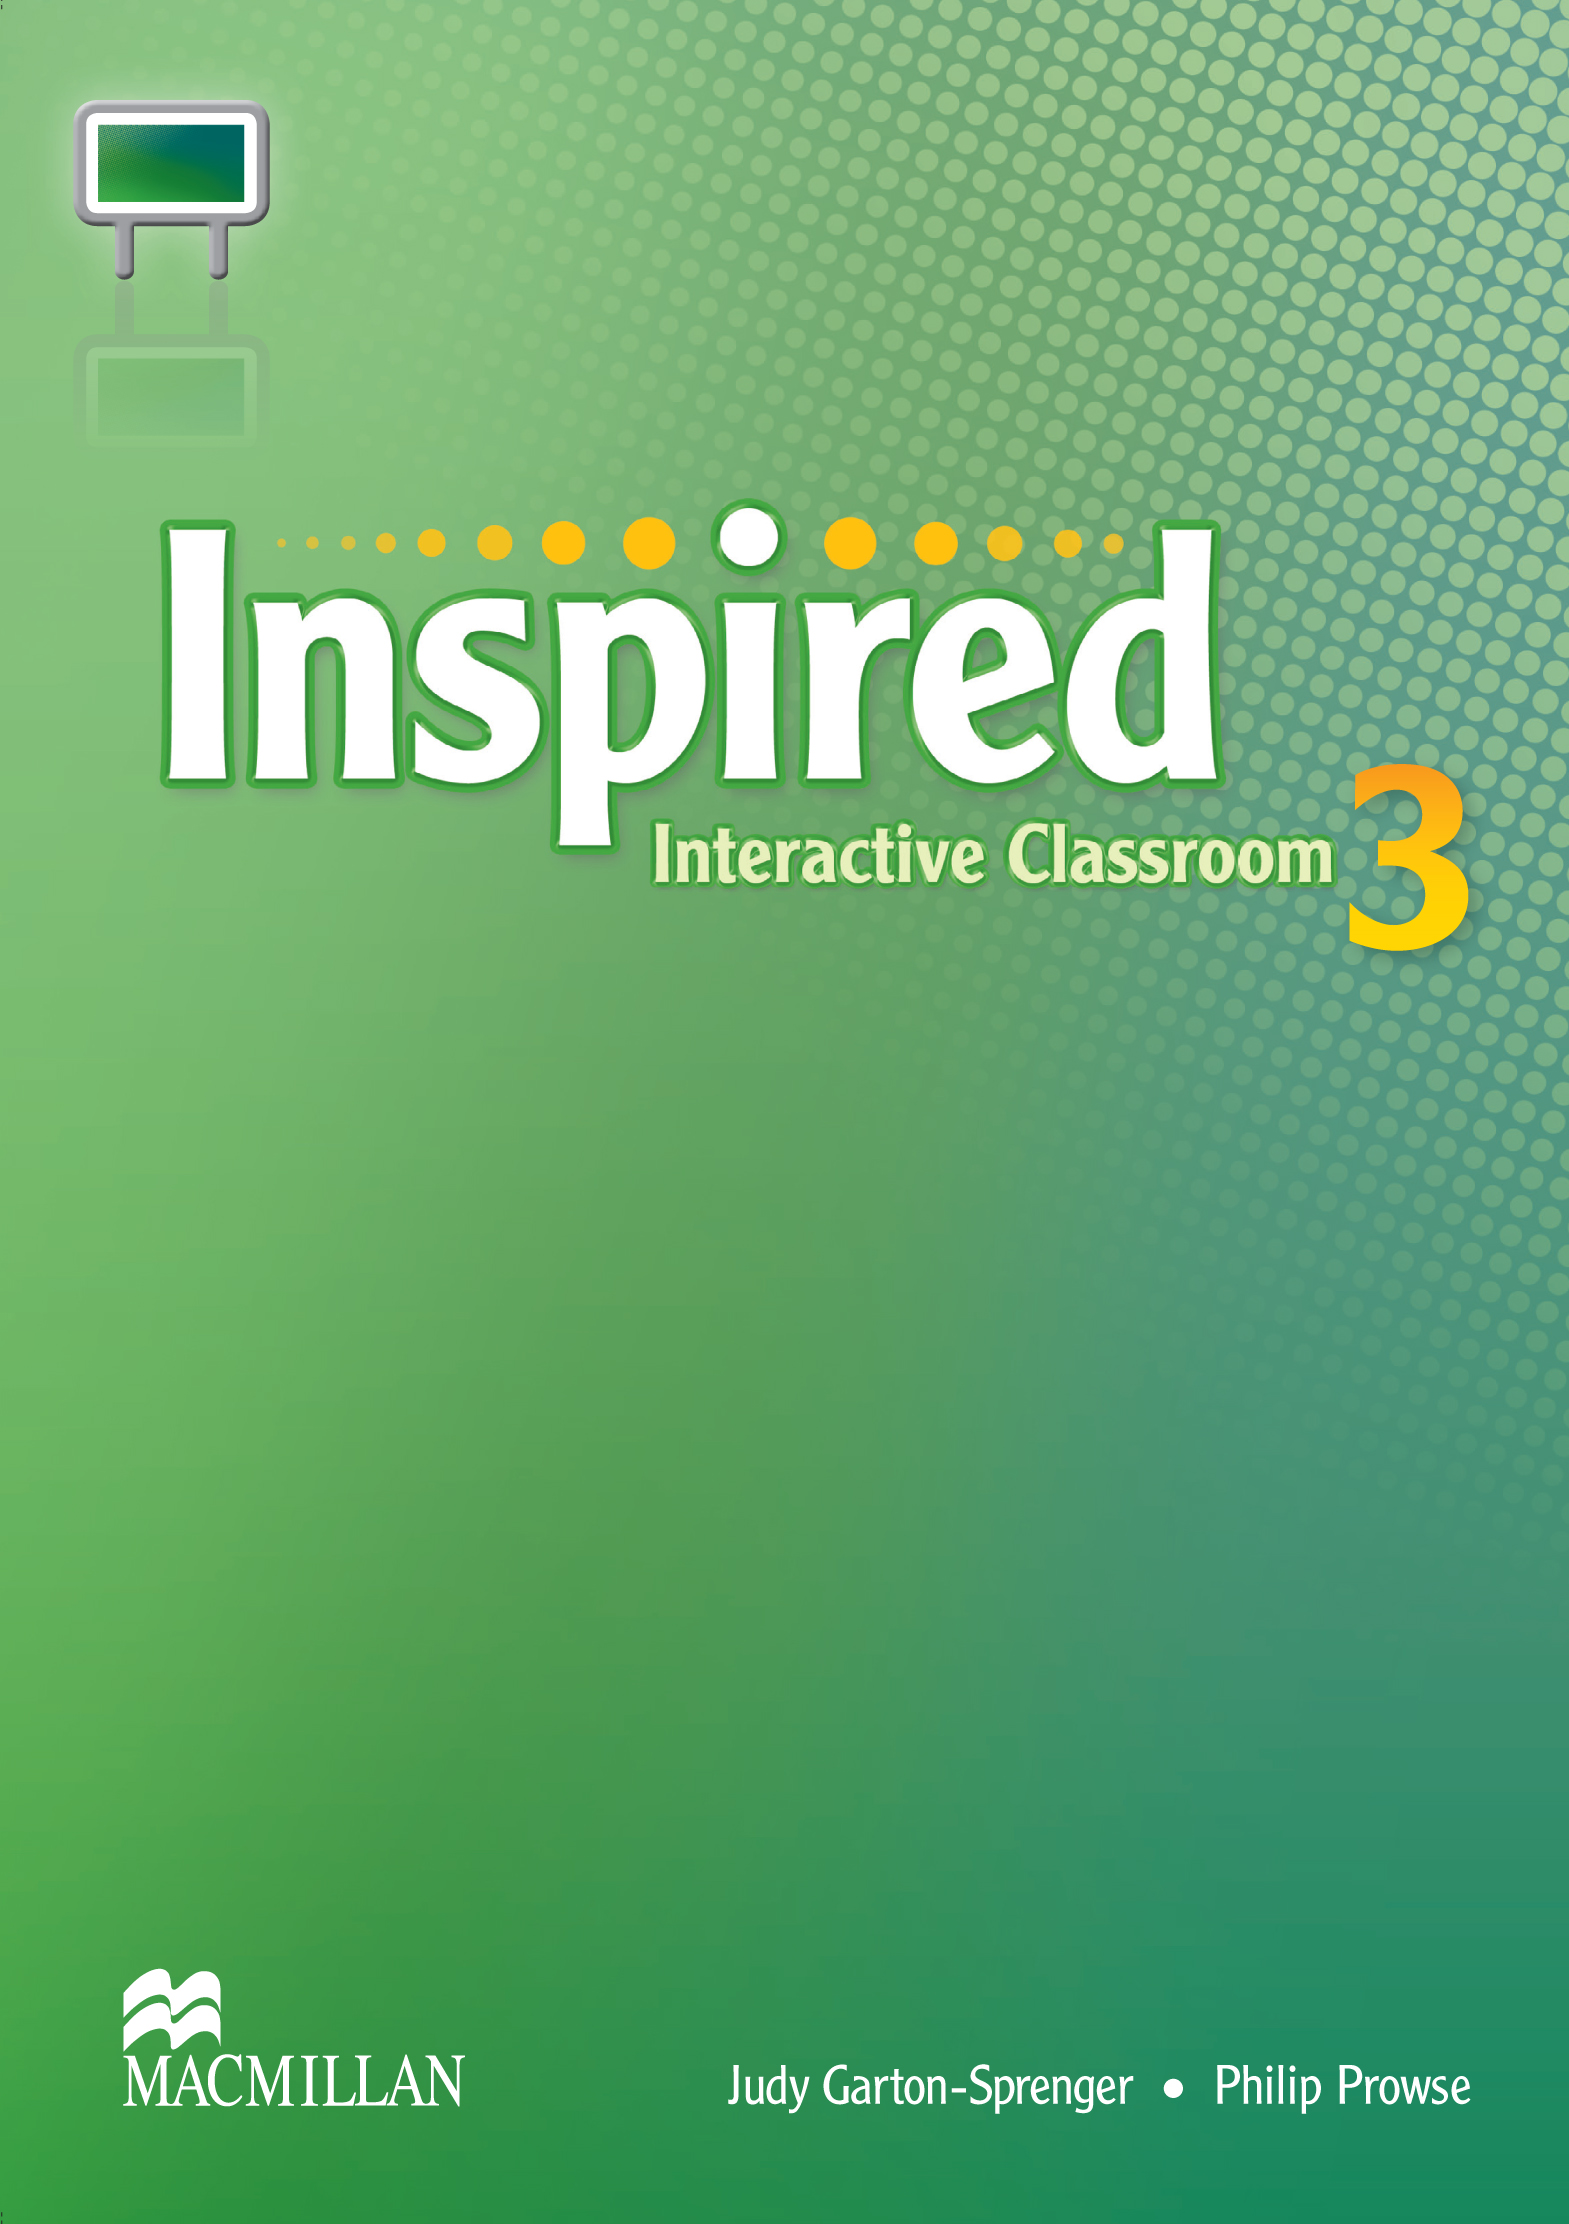 Inspired 3 Interactive Classroom